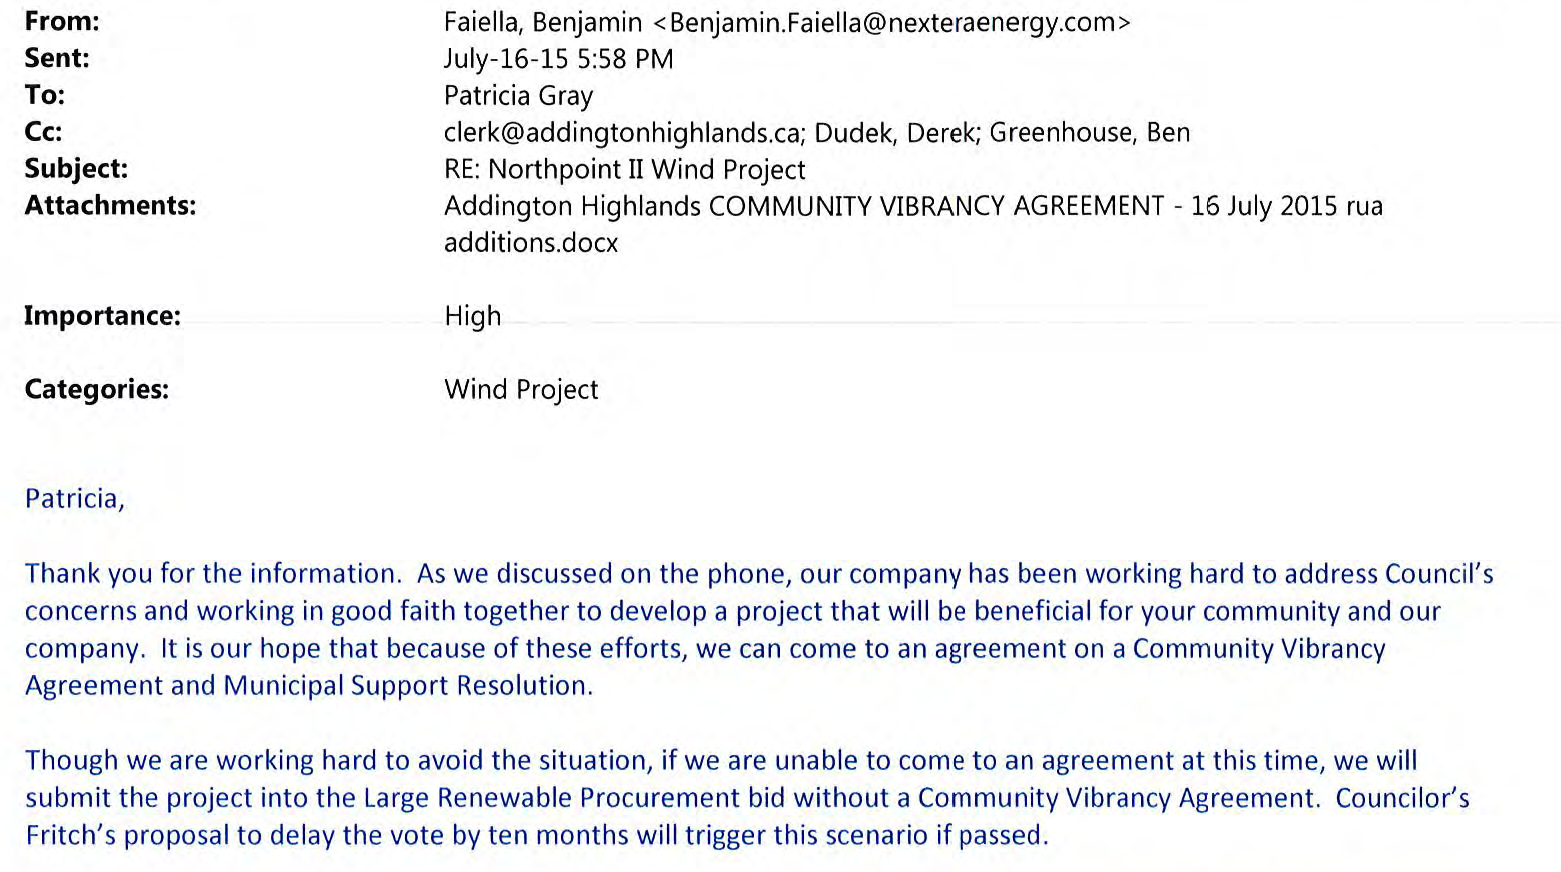 July 16, 2015 email from Benjamin Faiella of Nextera to Patricia Gray of Addington Highlands: